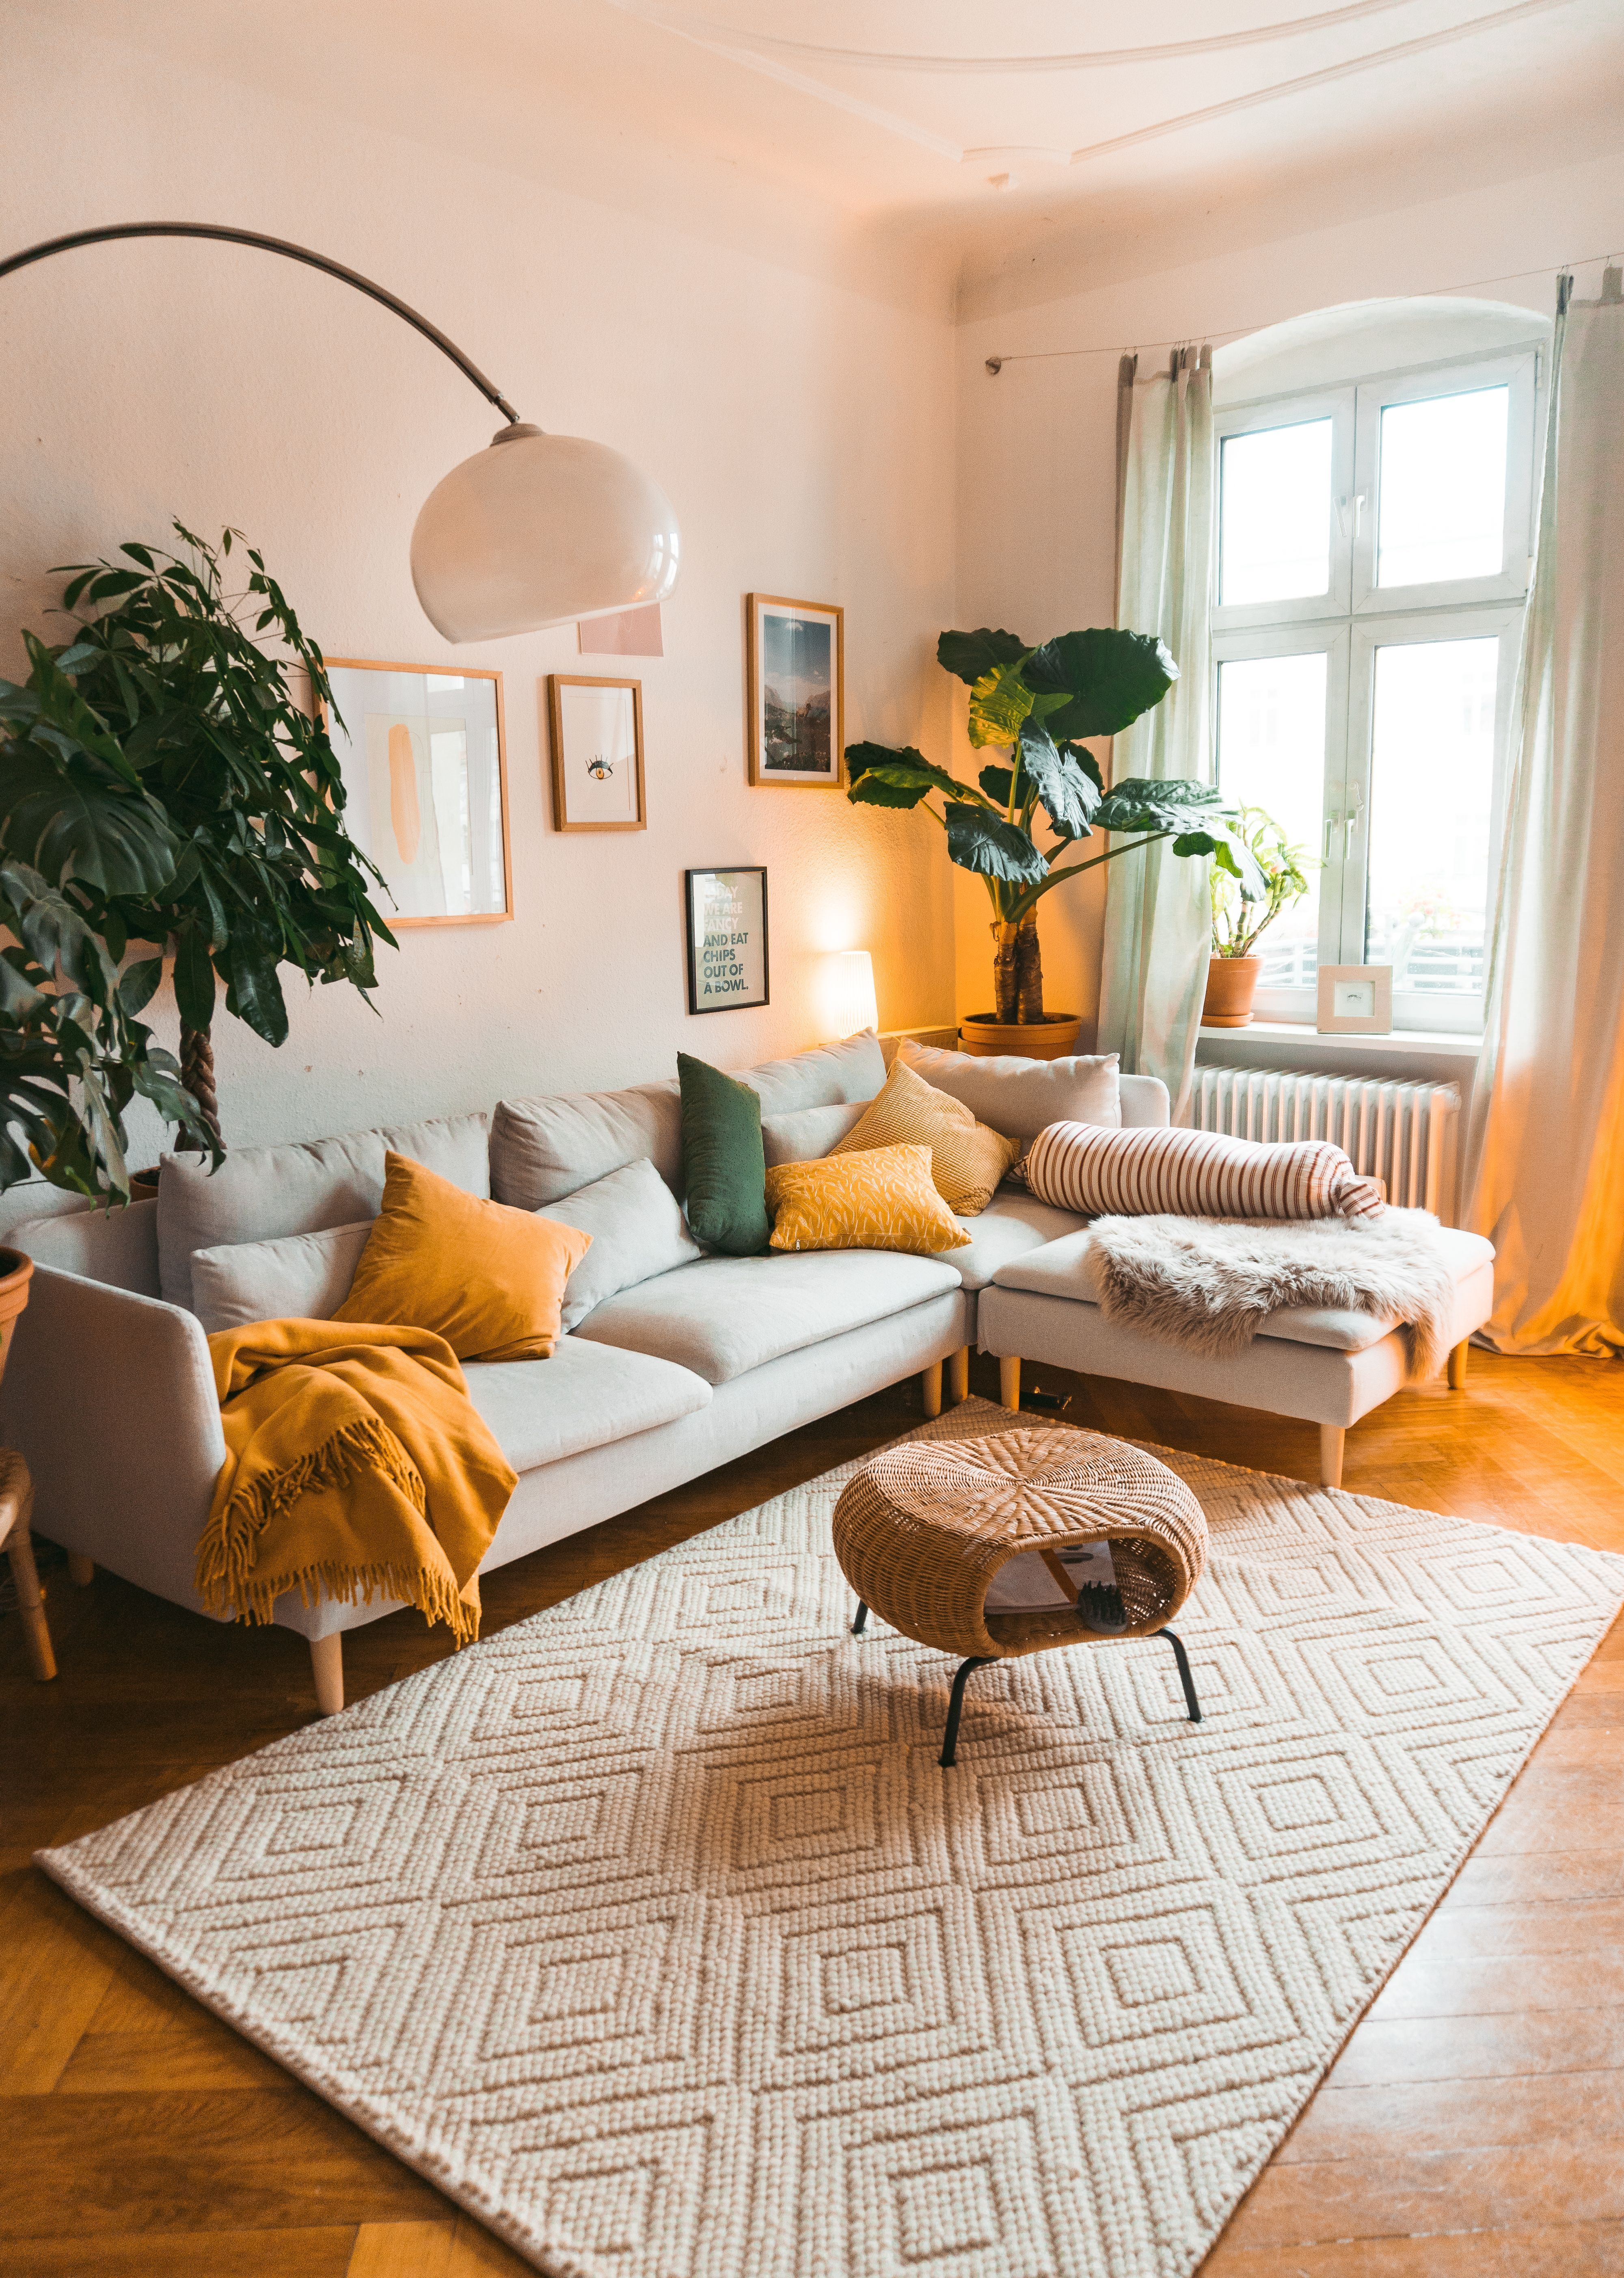 The Best Living Room Warm Color Scheme There Are A Variety Of Ways To Accent Your Living Room Furnitu In 2020 Warm Living Room Colors Boho Living Room Living Room Warm #warm #color #scheme #for #living #room